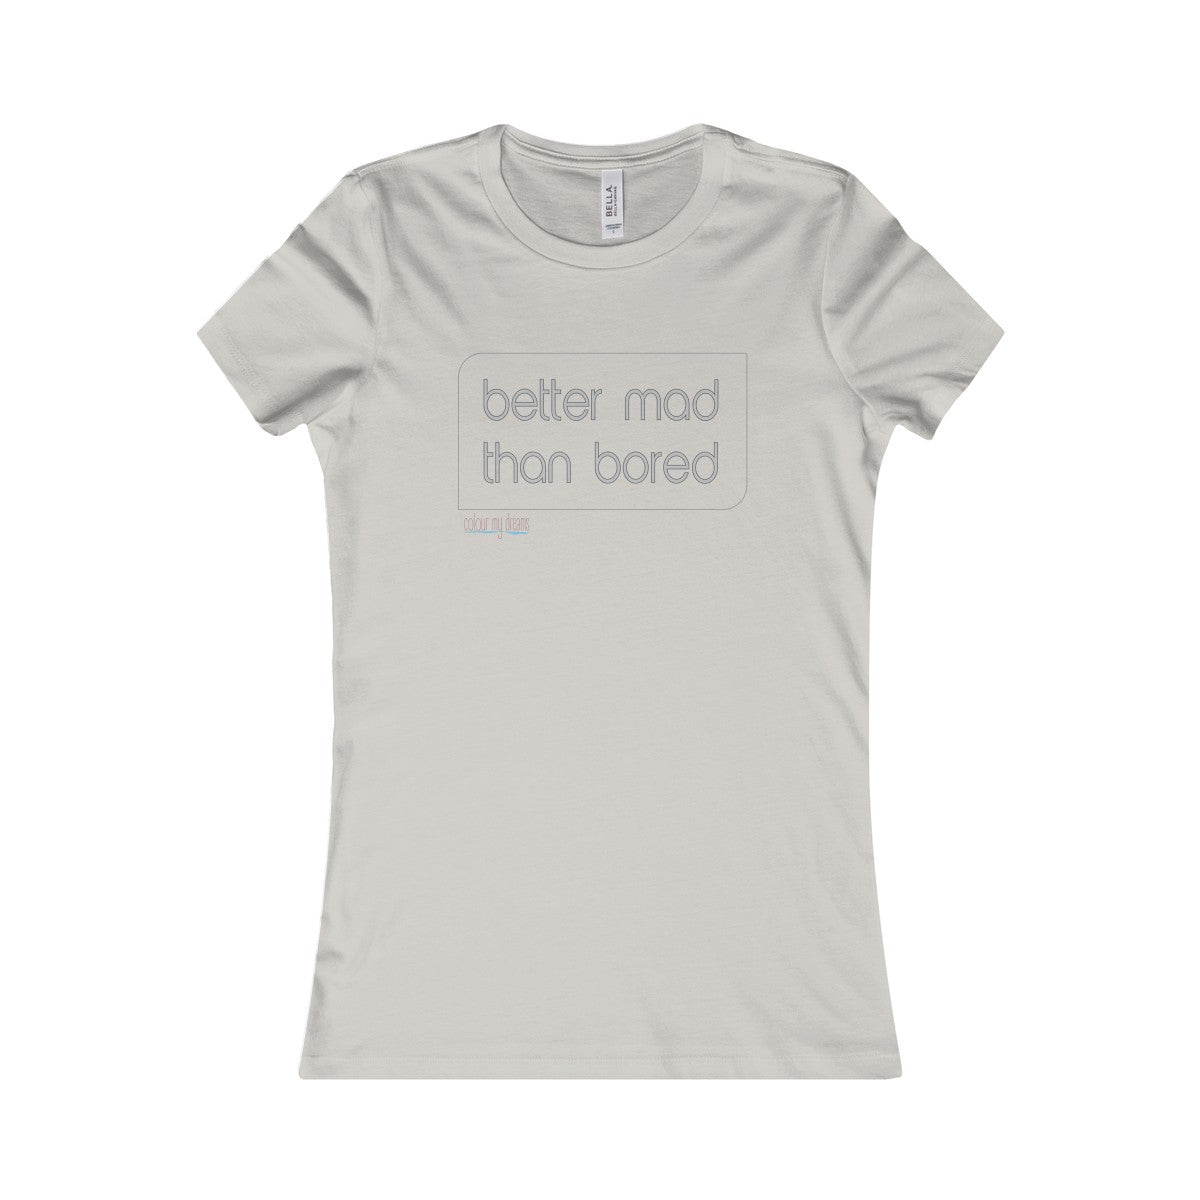 Women's Favourite T-Shirt - Better Mad Than Bored (Grey)